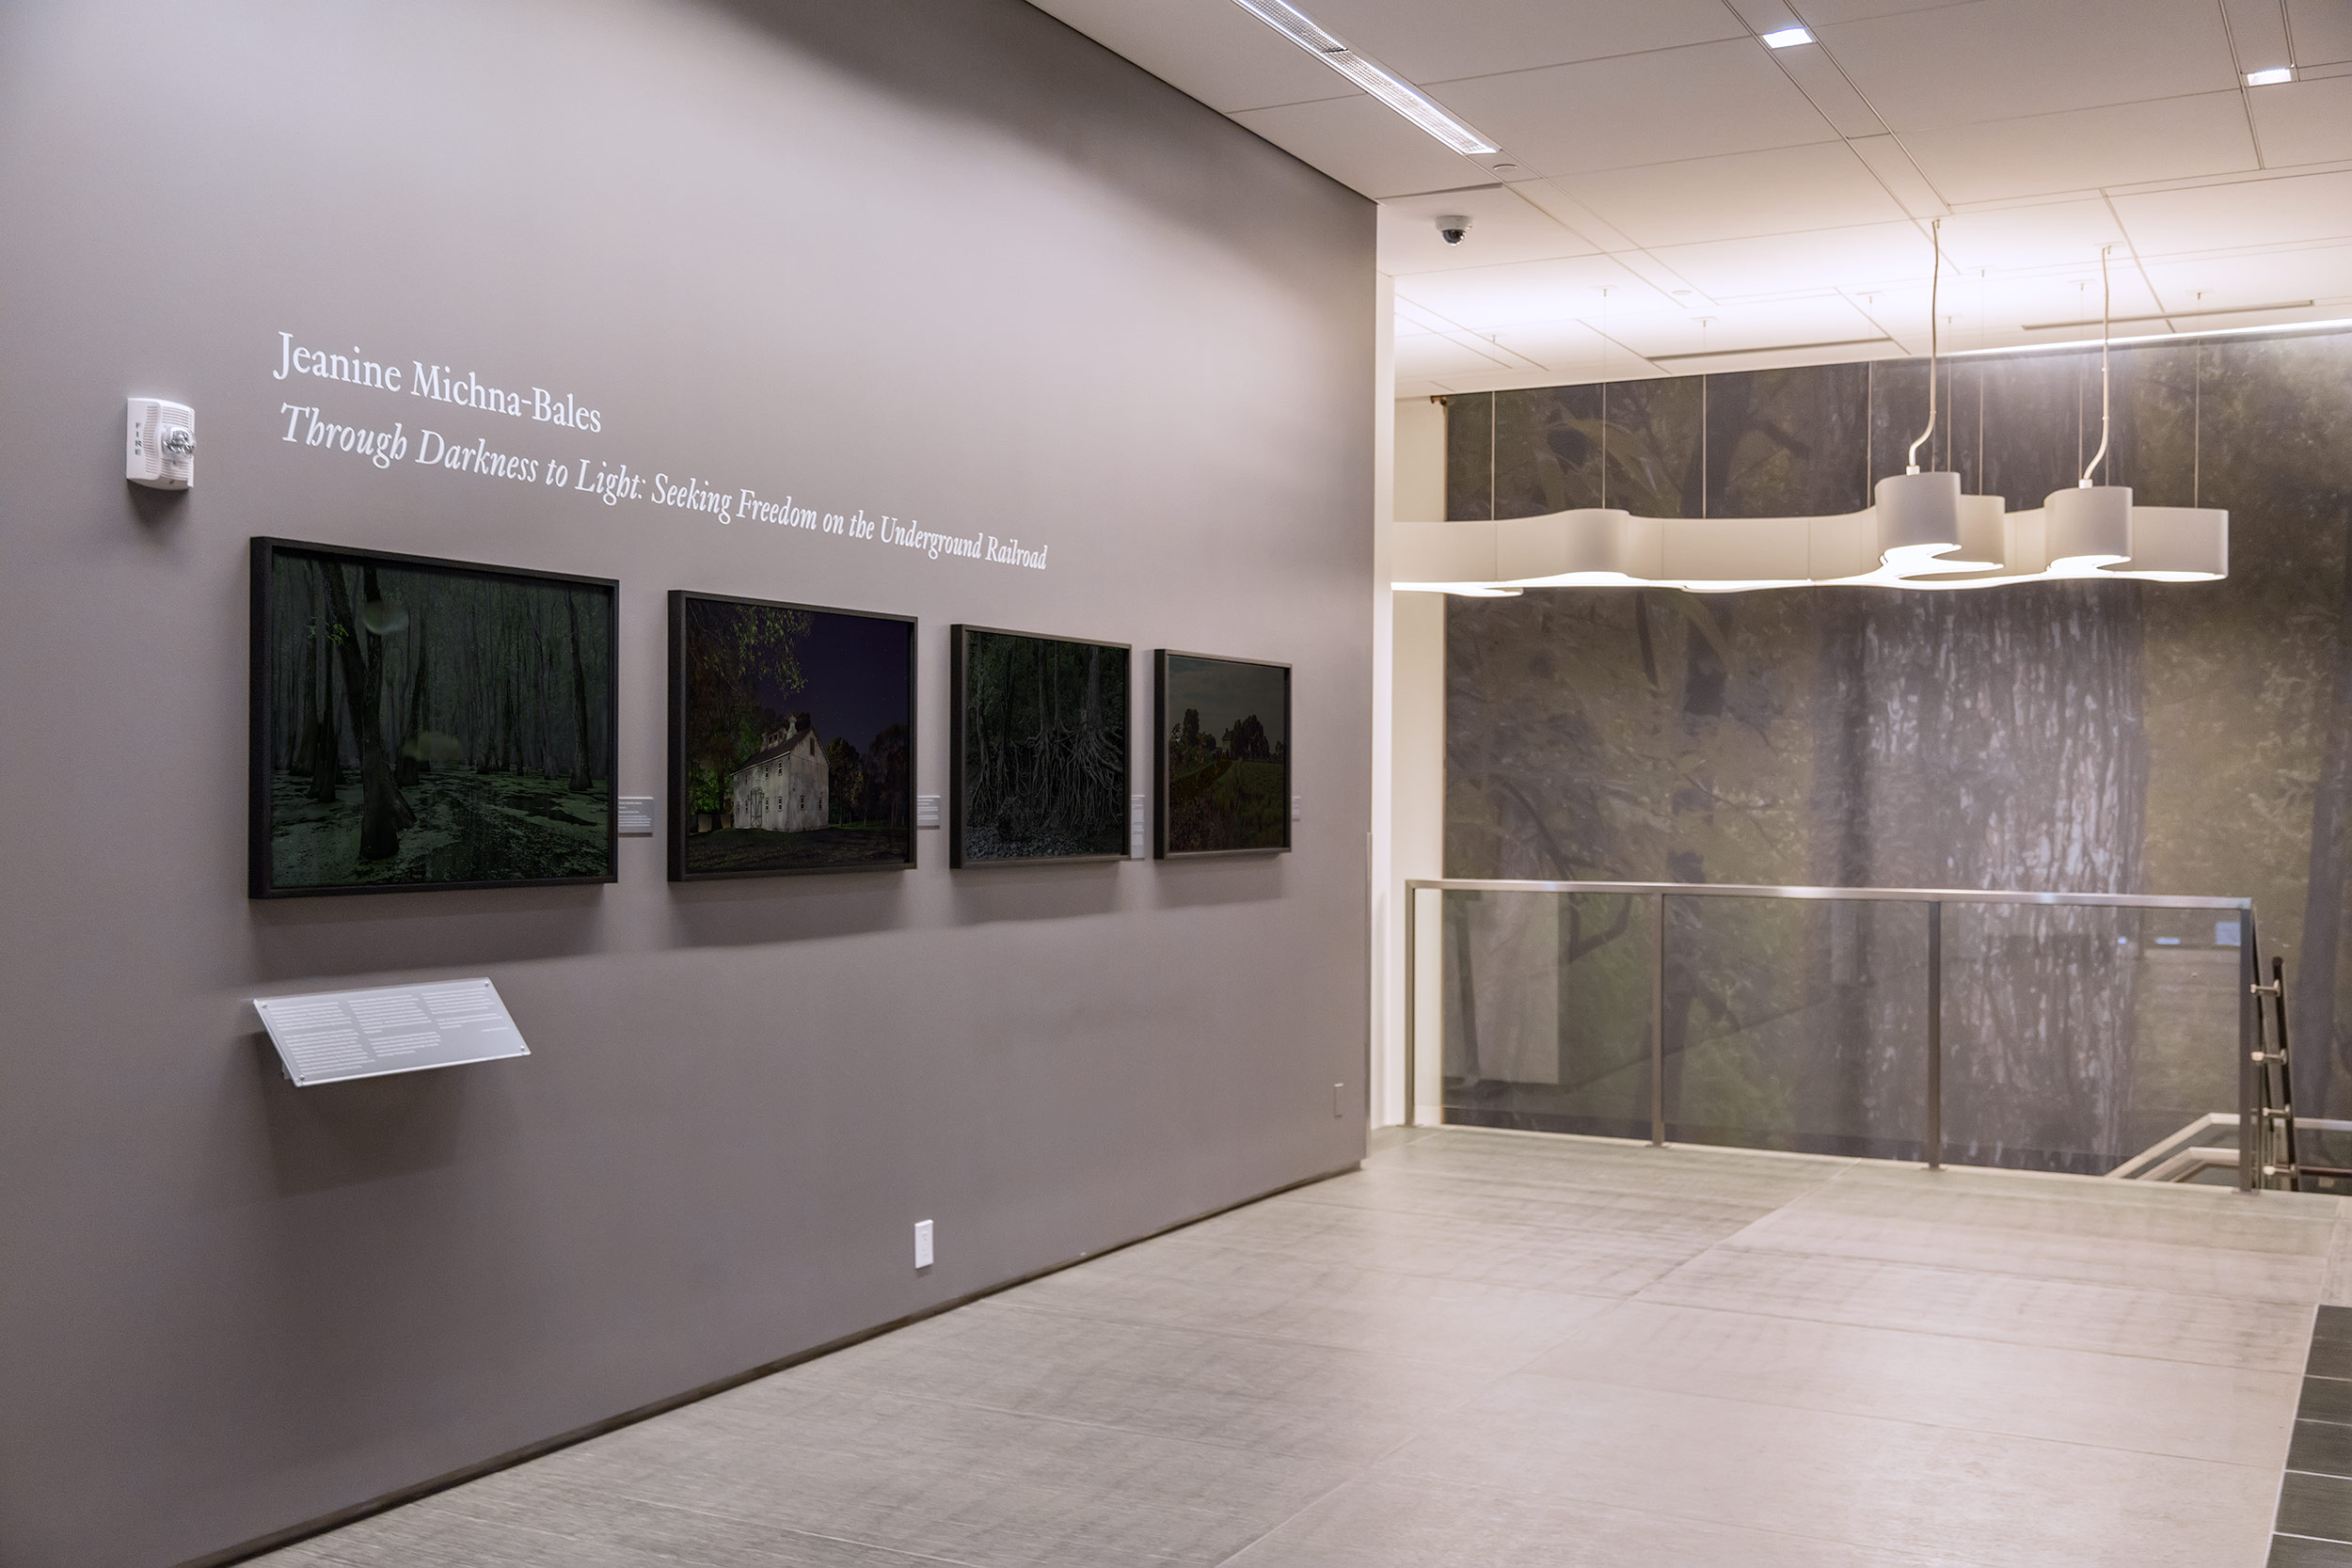 Moving Walls 23: Journeys   at Open Society Foundations, New York, NY, 2015